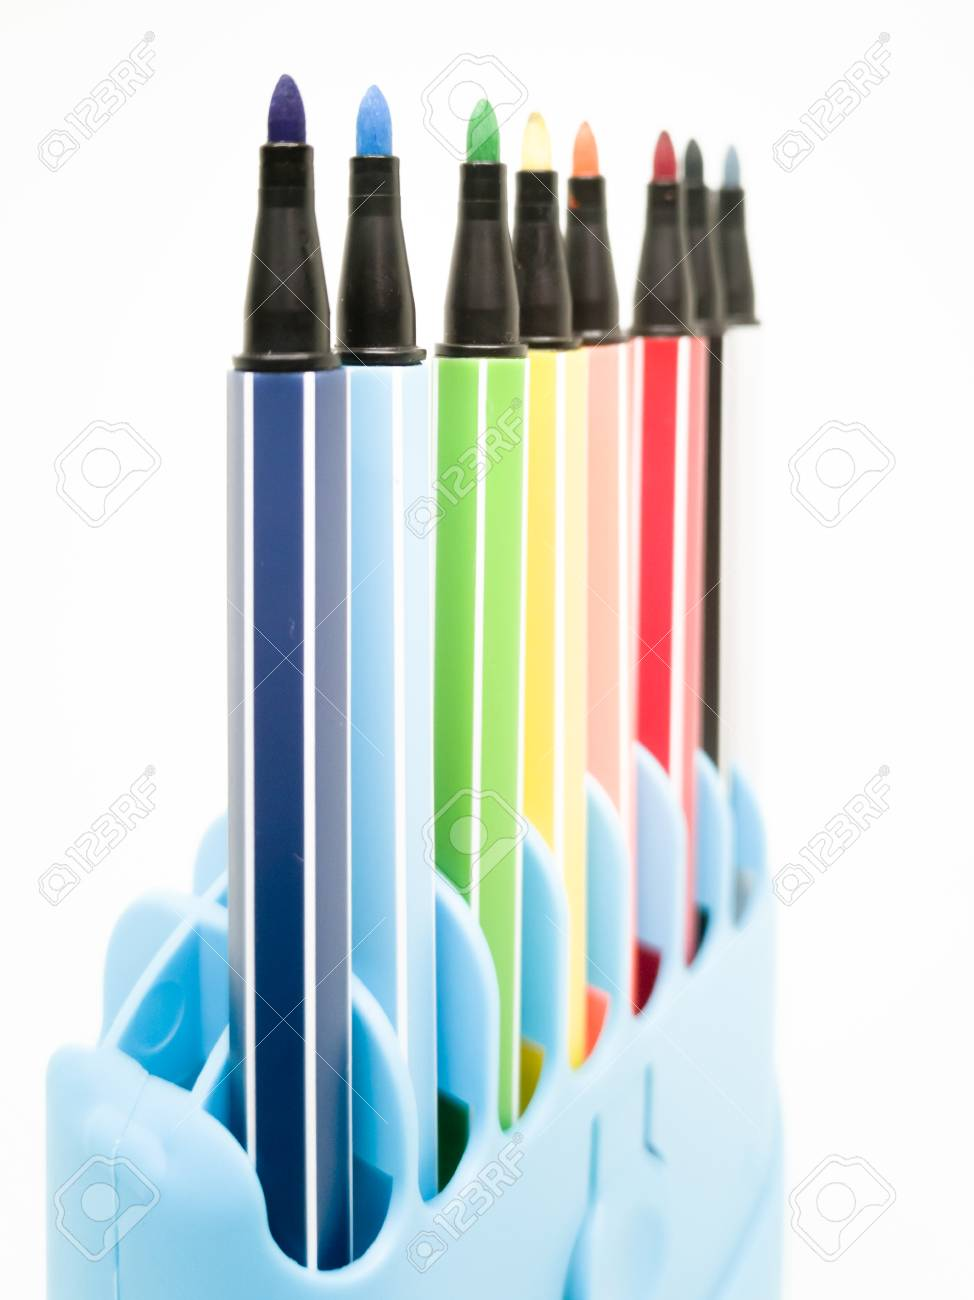 Set of colorful marker paint pen isolated against white background - 106223058